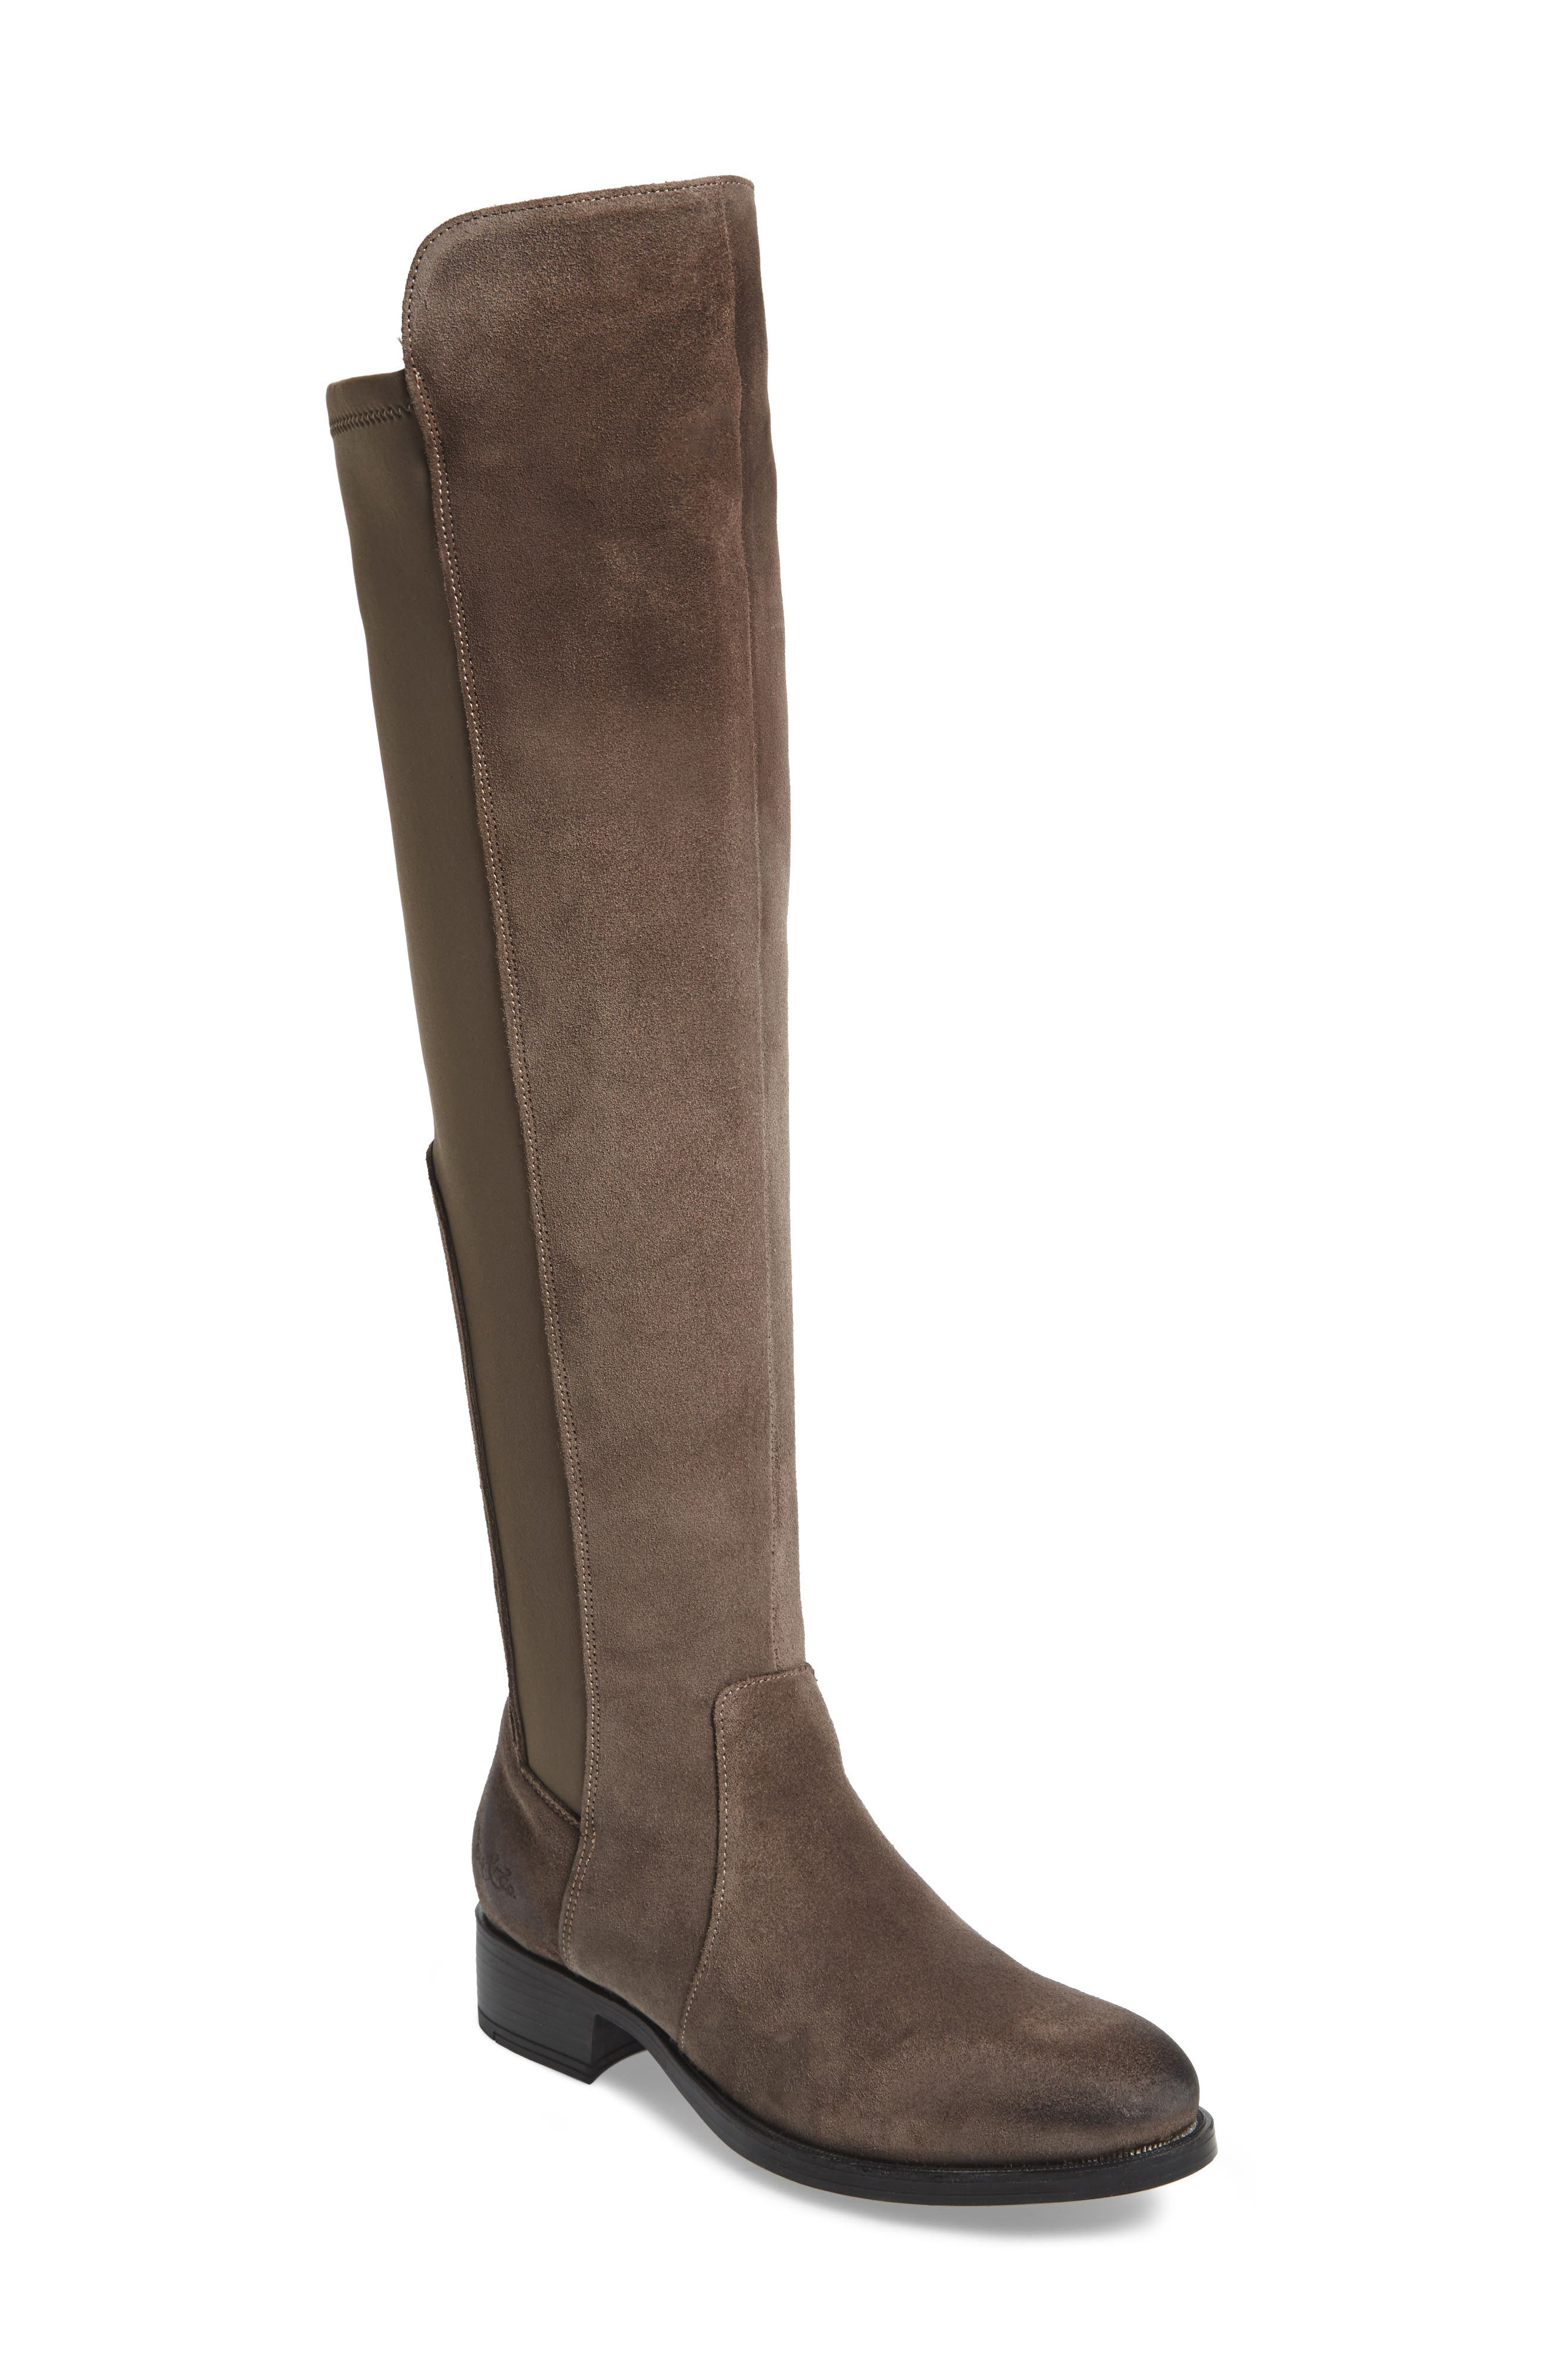 Bunt Waterproof Over the Knee Boot,                             Main thumbnail 1, color,                             Elephant Suede Leather